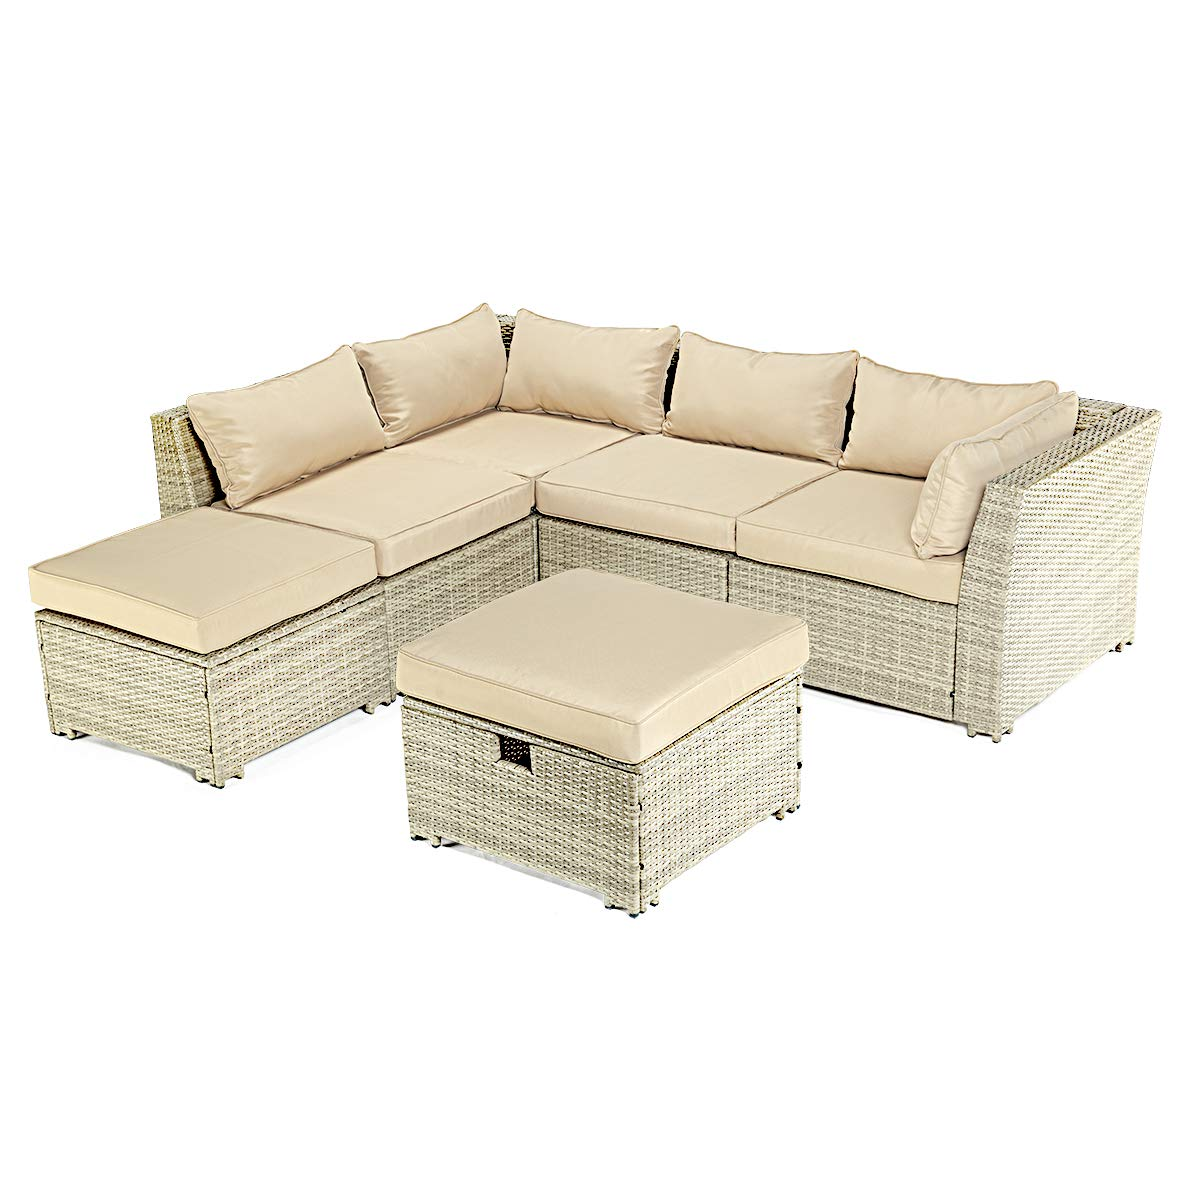 Outdoor Patio Furniture With Storage.Pamapic 6 Pieces Outdoor Patio Furniture Set Storage Function All Weather Pe Rattan Beige Wicker Sectional Sofaseat Natural Incline More Ergonomic